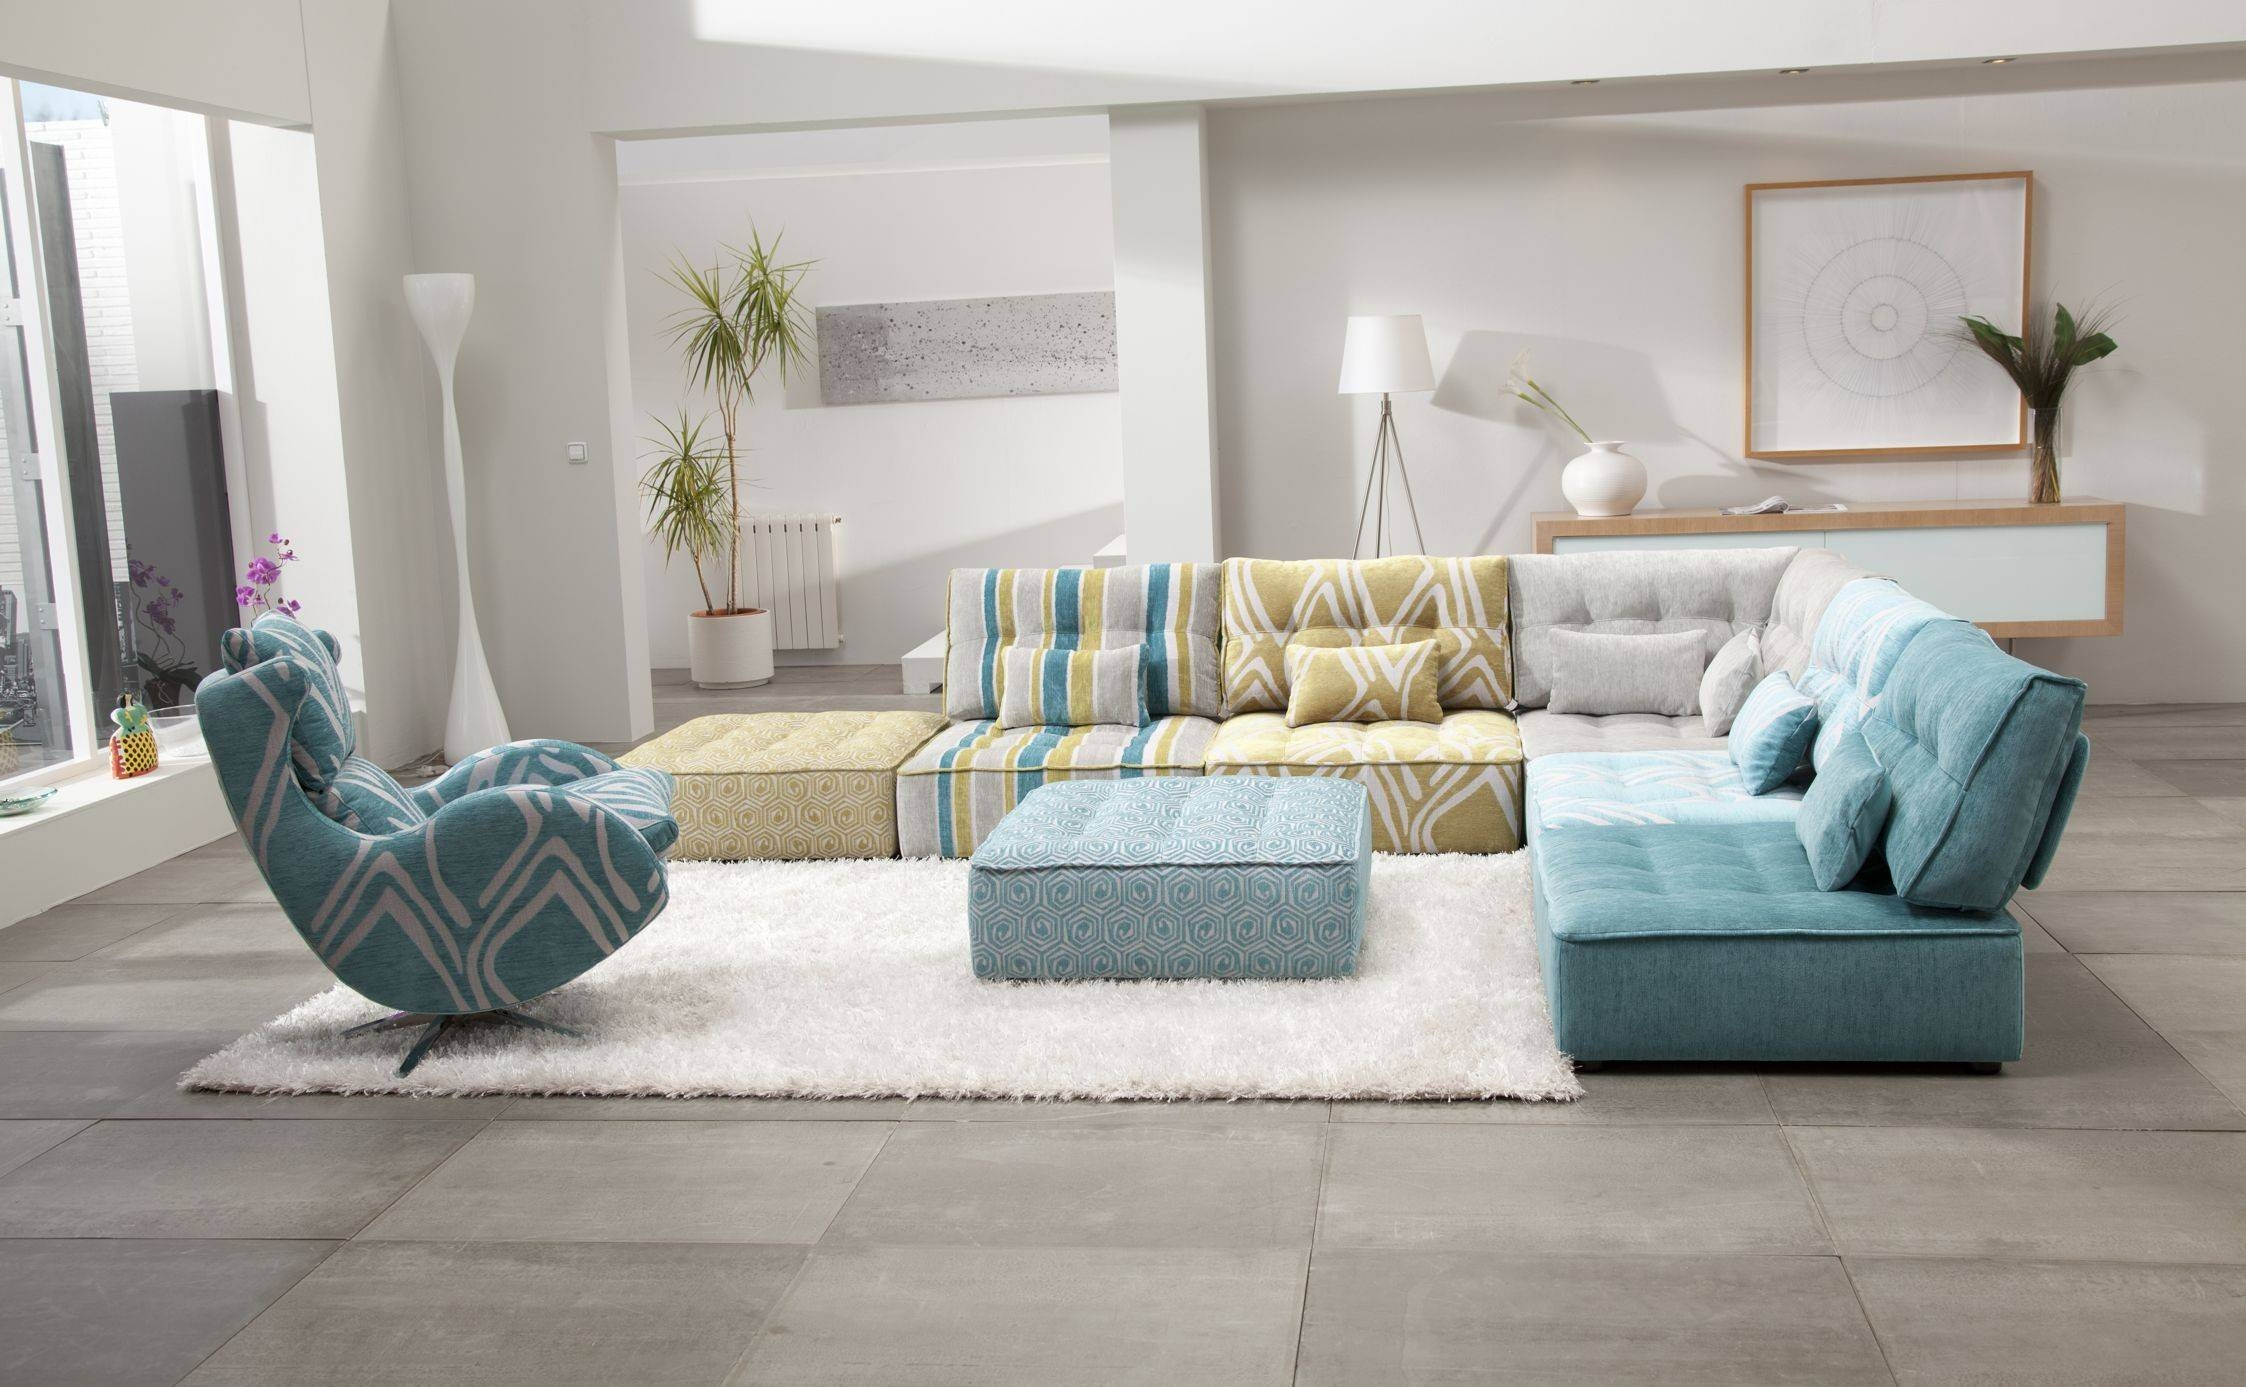 Sofa: Comfort And Style Is Evident In This Dynamic With Tufted inside Small Modular Sectional Sofa (Image 23 of 25)